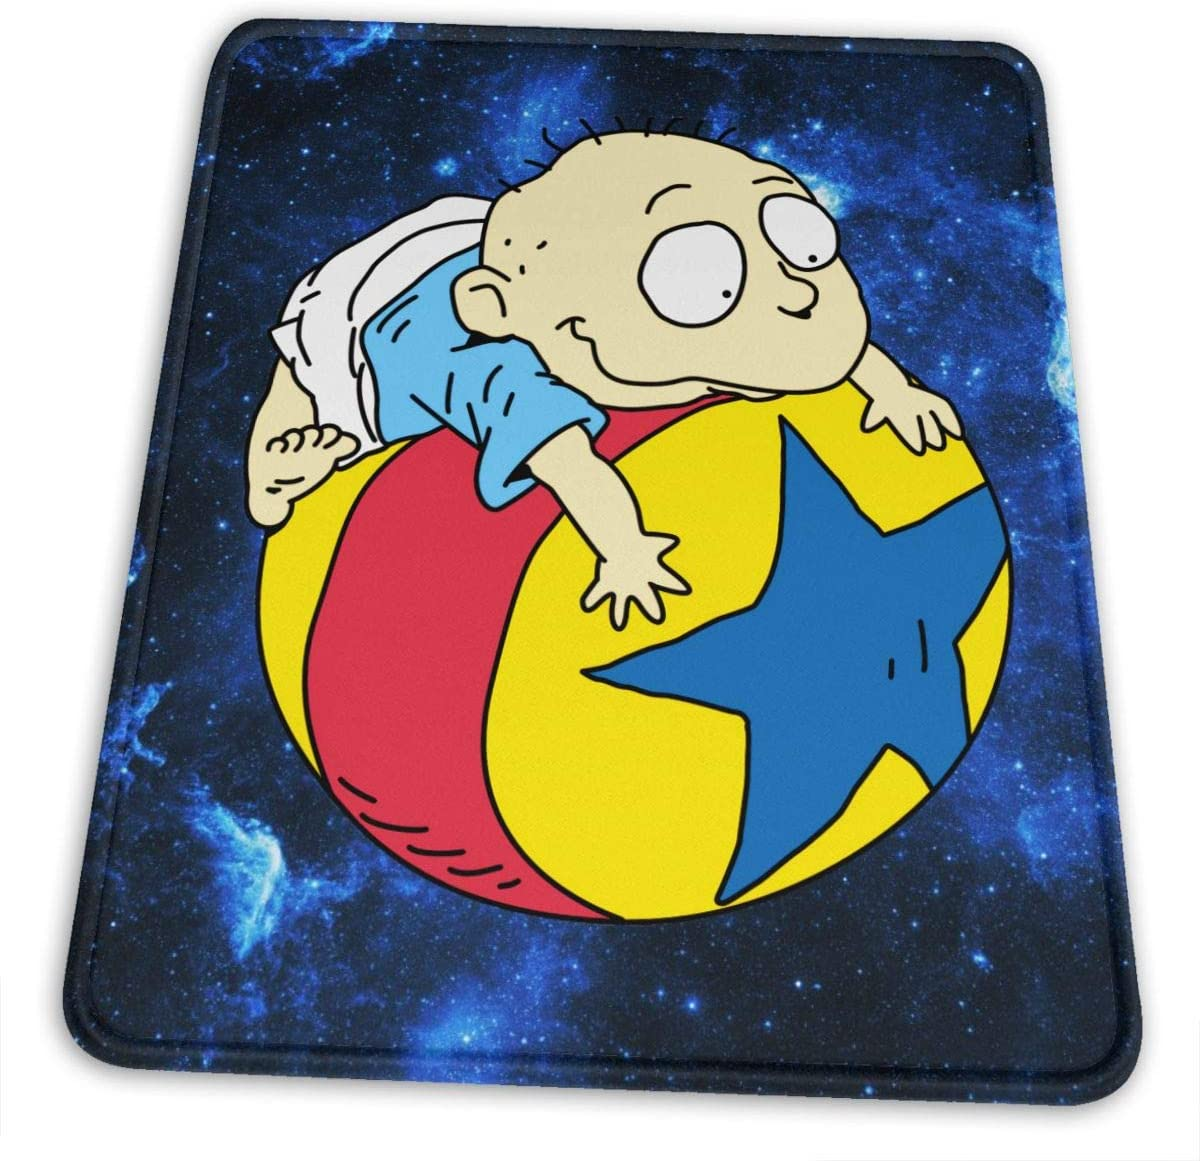 Rugrats Mouse Pad Ergonomic Mousepad Non-Slip Rubber Base Mouse Pads for Computers Laptop Office Desk Accessories Mouse Pad 7.9 X 9.5 in